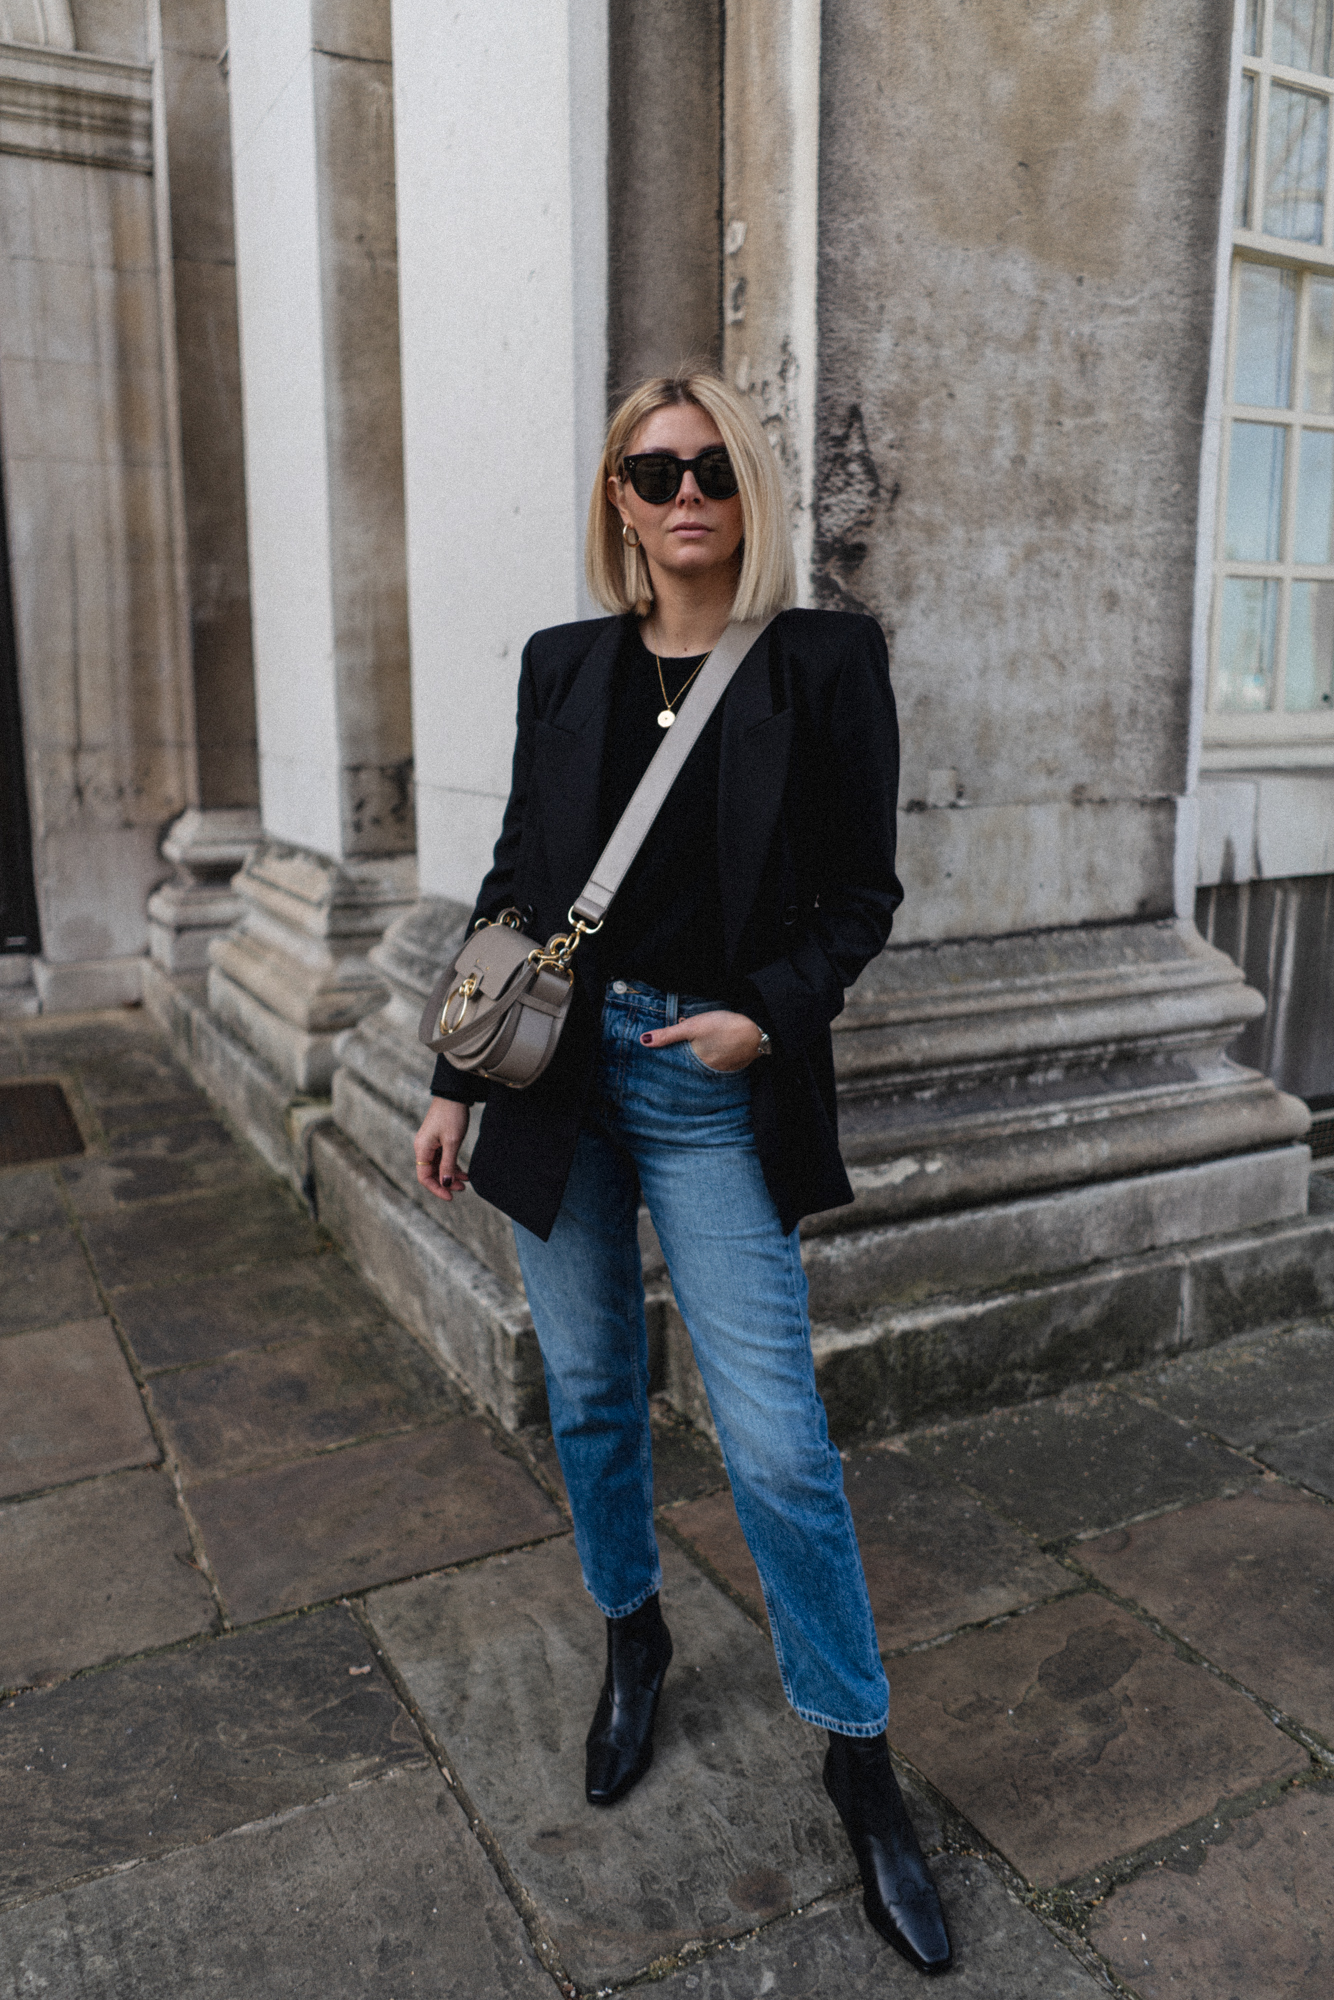 Black Blazer, chloe tess bag, topshop editor straight leg jeans, square toe western boots, chic outfit